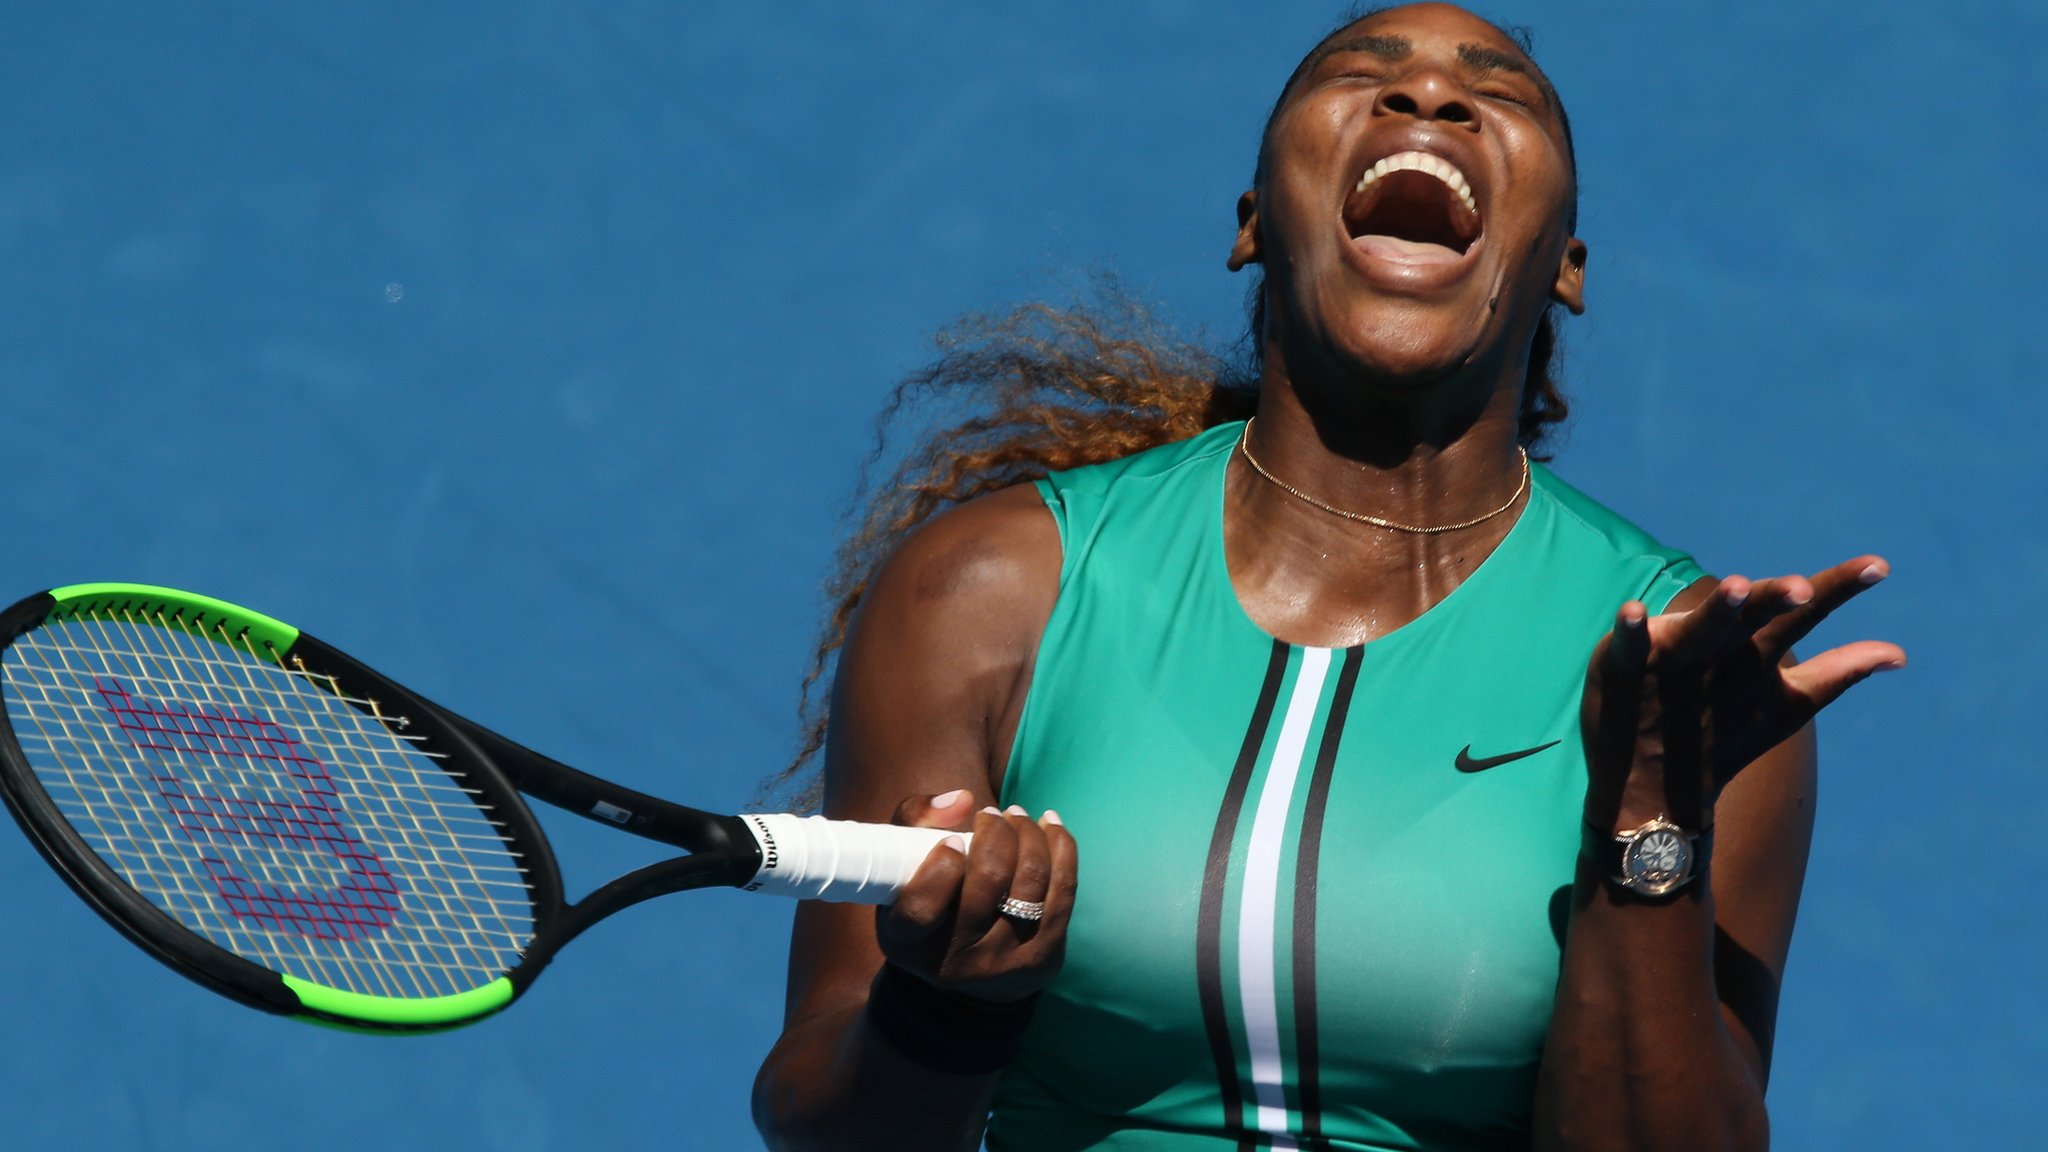 Serena Williams knocked out of Australian Open by Karolina Pliskova after holding match points